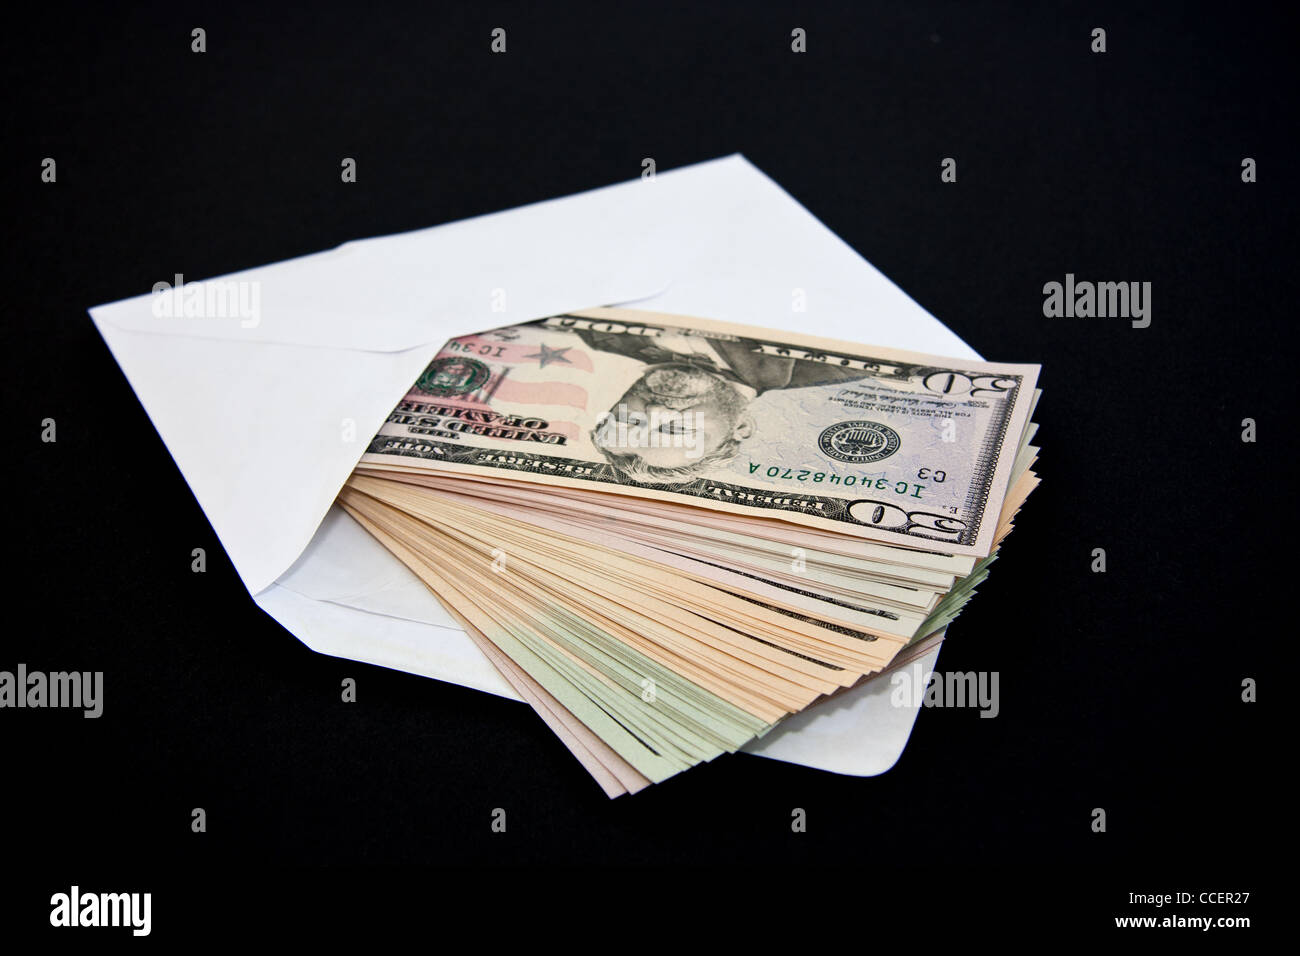 Notes coming out an envelope - Stock Image